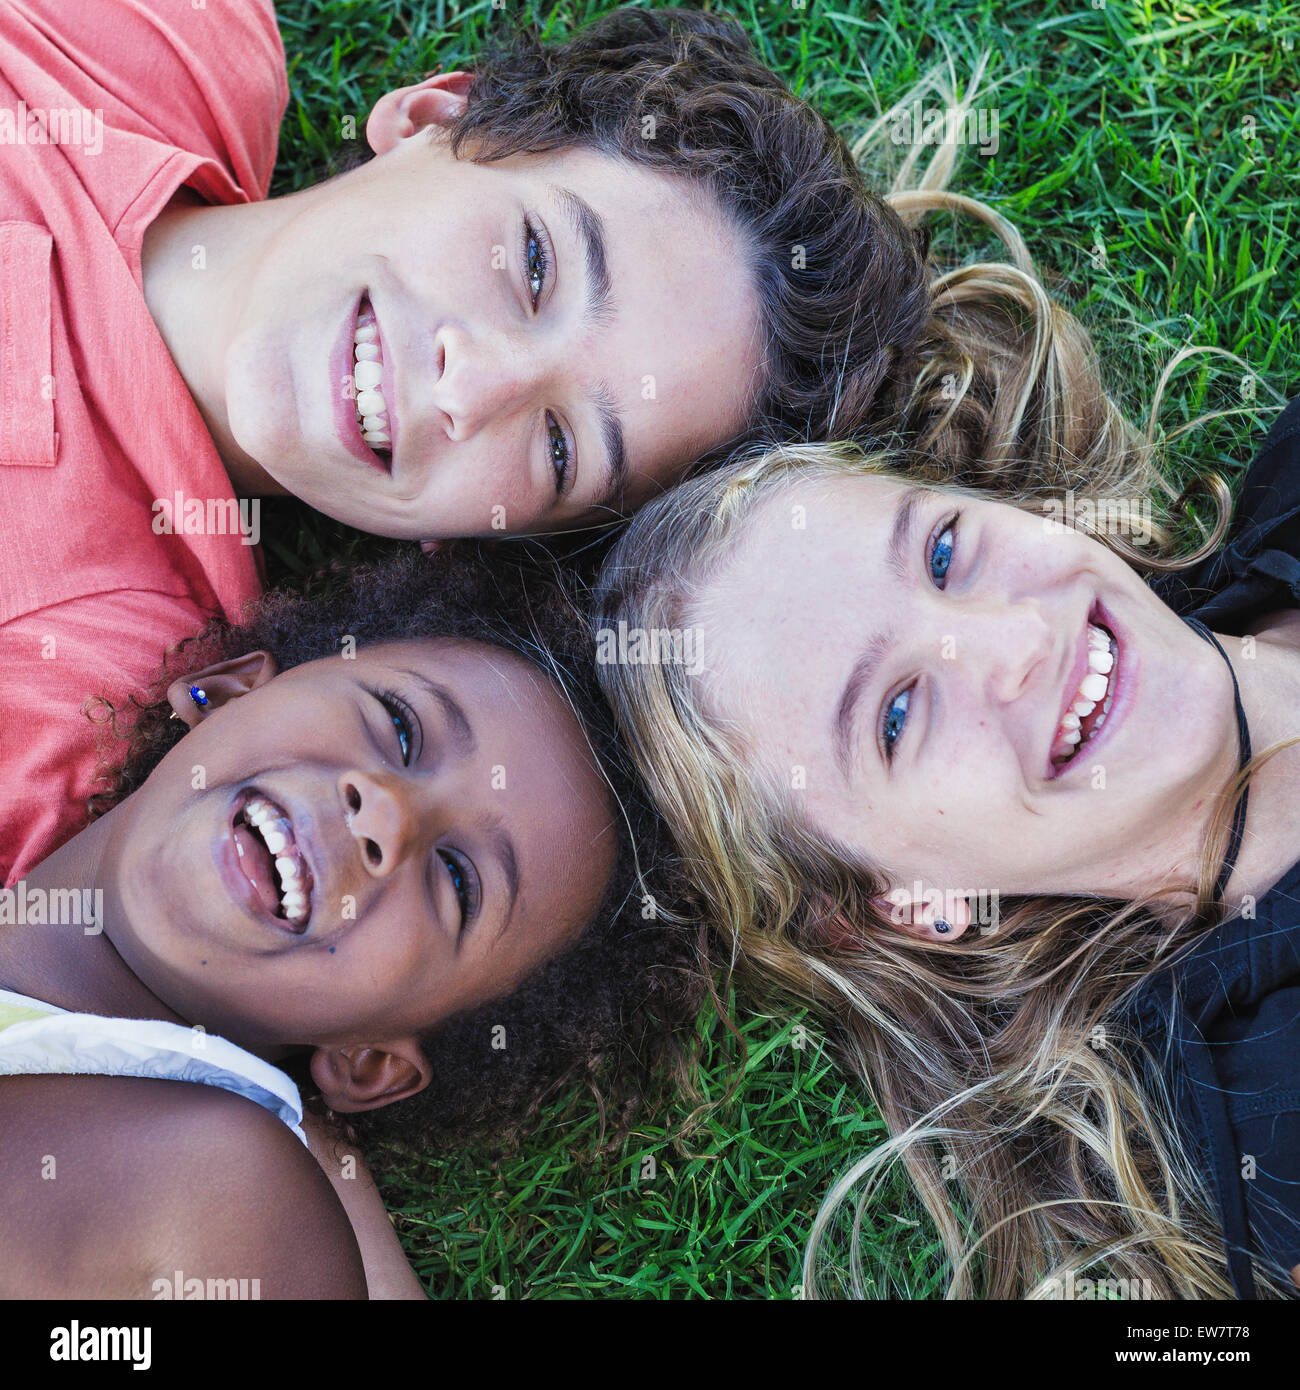 Elevated view of three smiling children lying on the grass - Stock Image